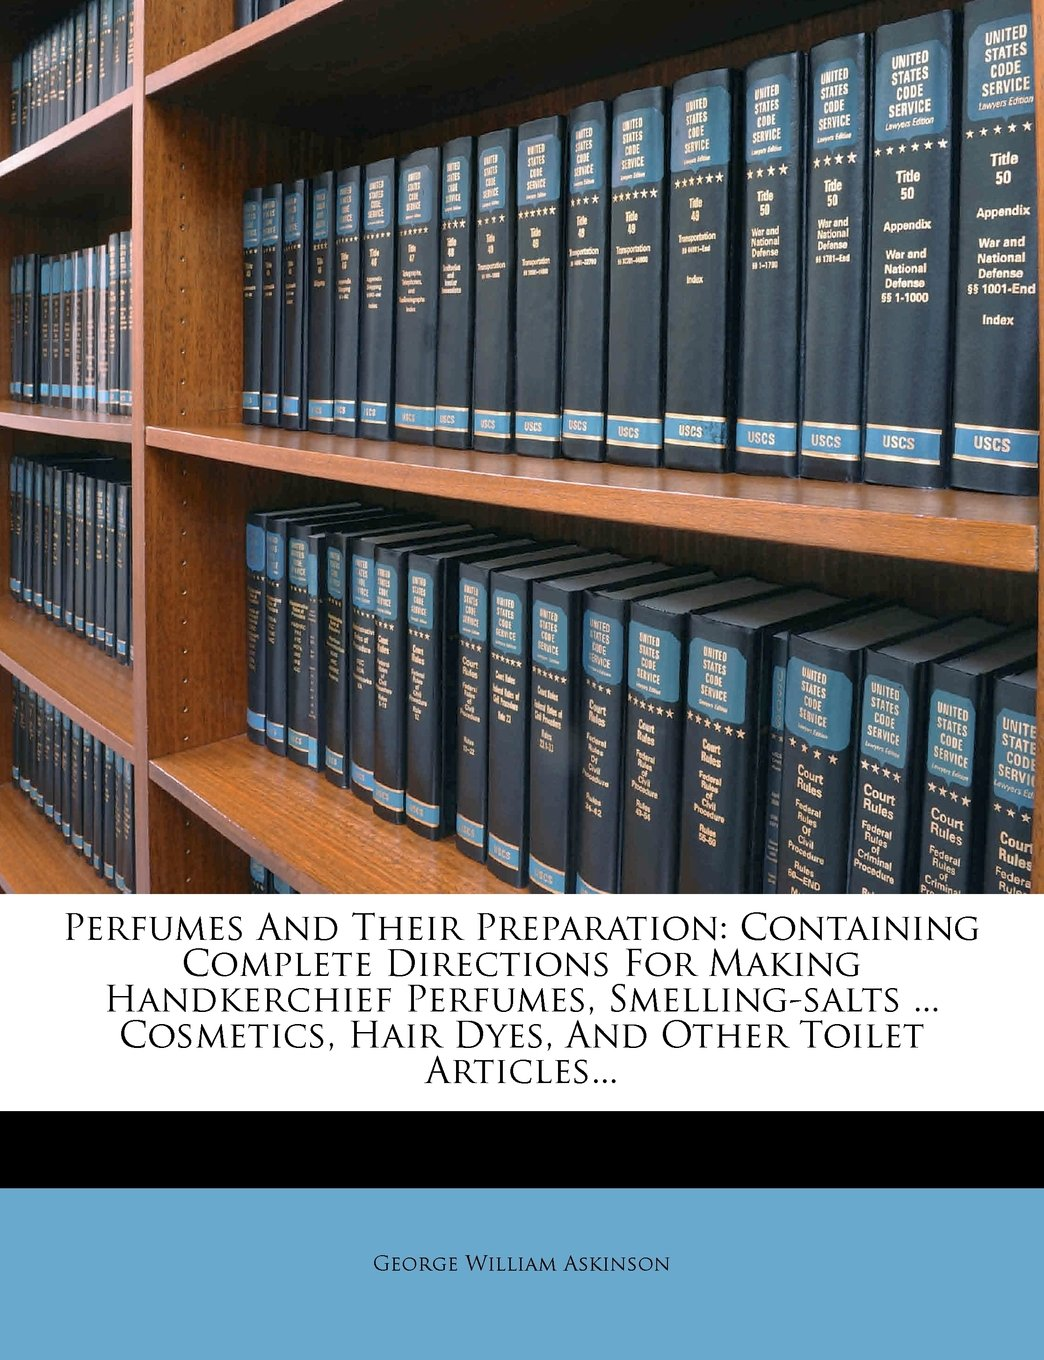 Read Online Perfumes And Their Preparation: Containing Complete Directions For Making Handkerchief Perfumes, Smelling-salts ... Cosmetics, Hair Dyes, And Other Toilet Articles... pdf epub